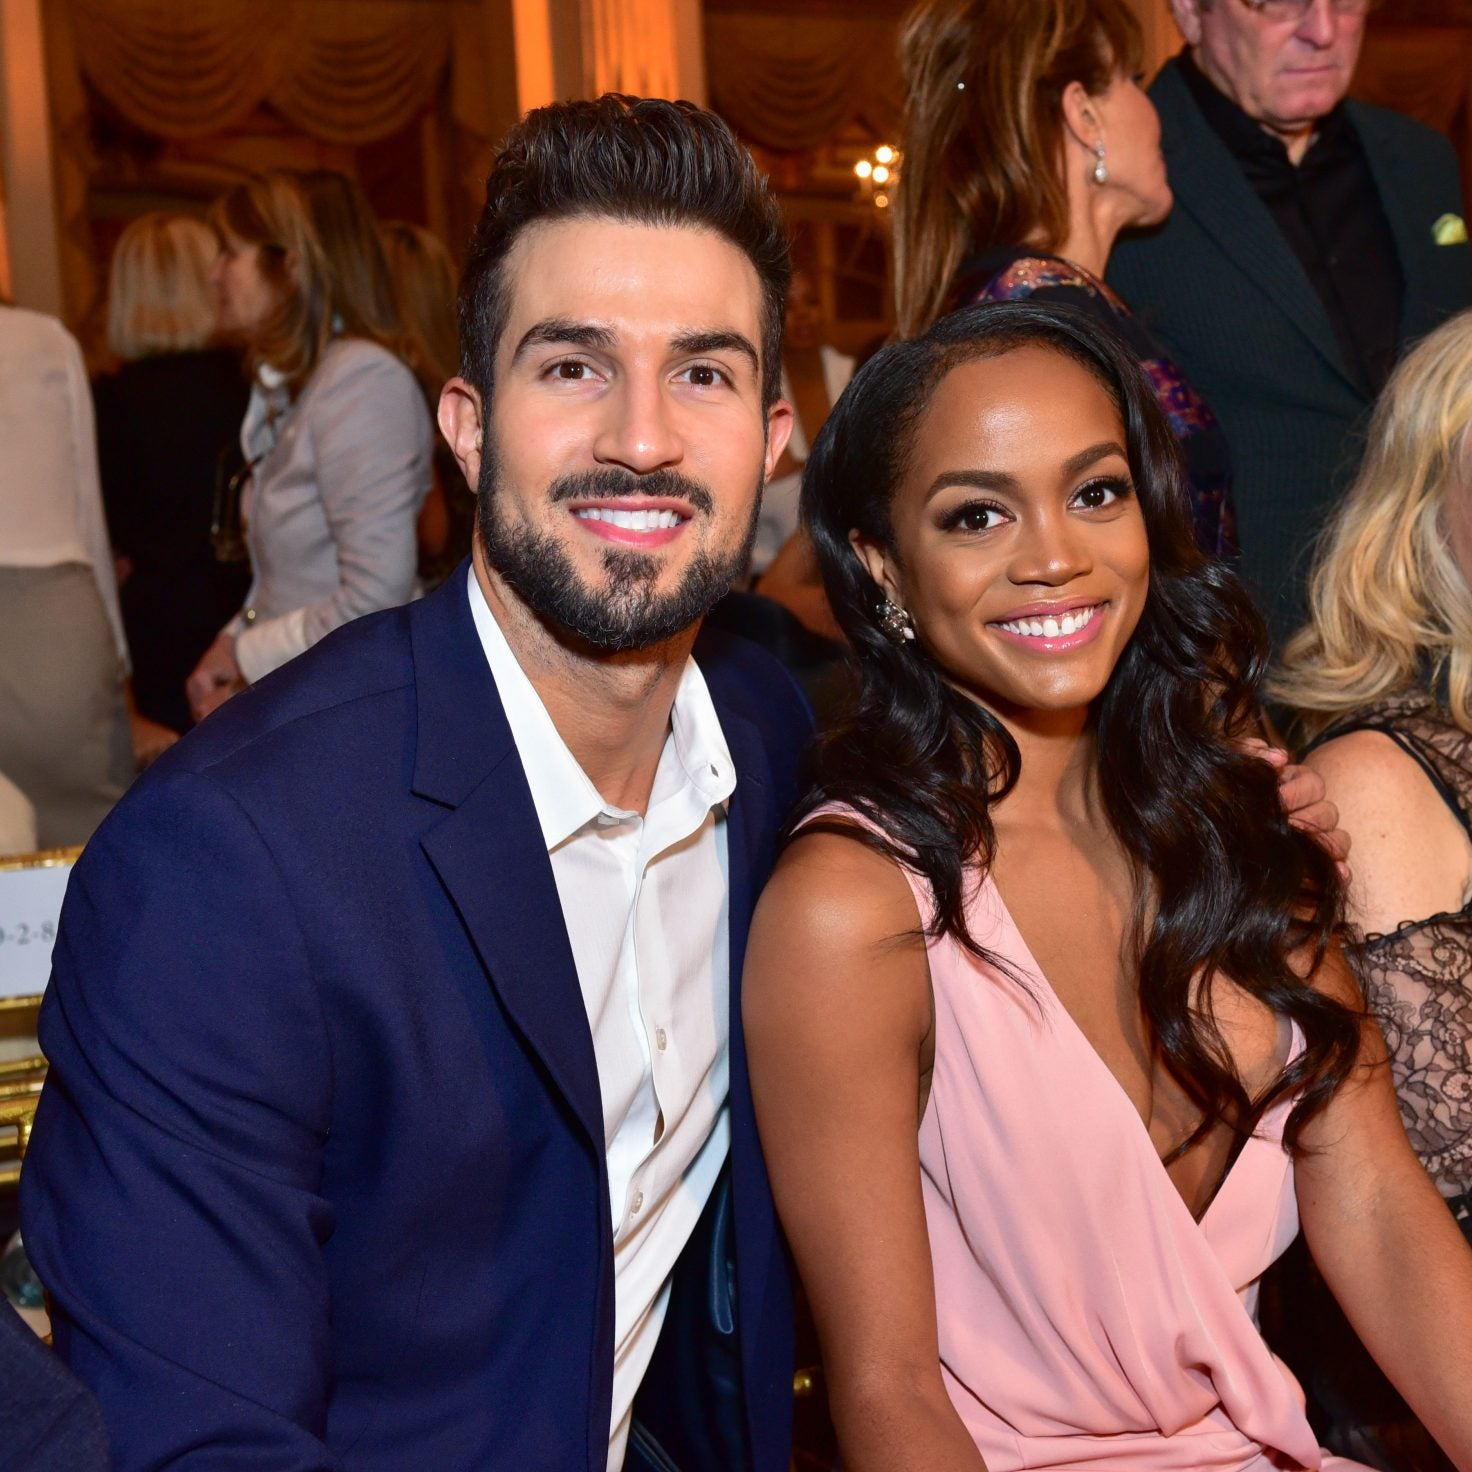 'The Bachelorette' Star Rachel Lindsay and Bryan Abasolo's Wedding Photos Are Here